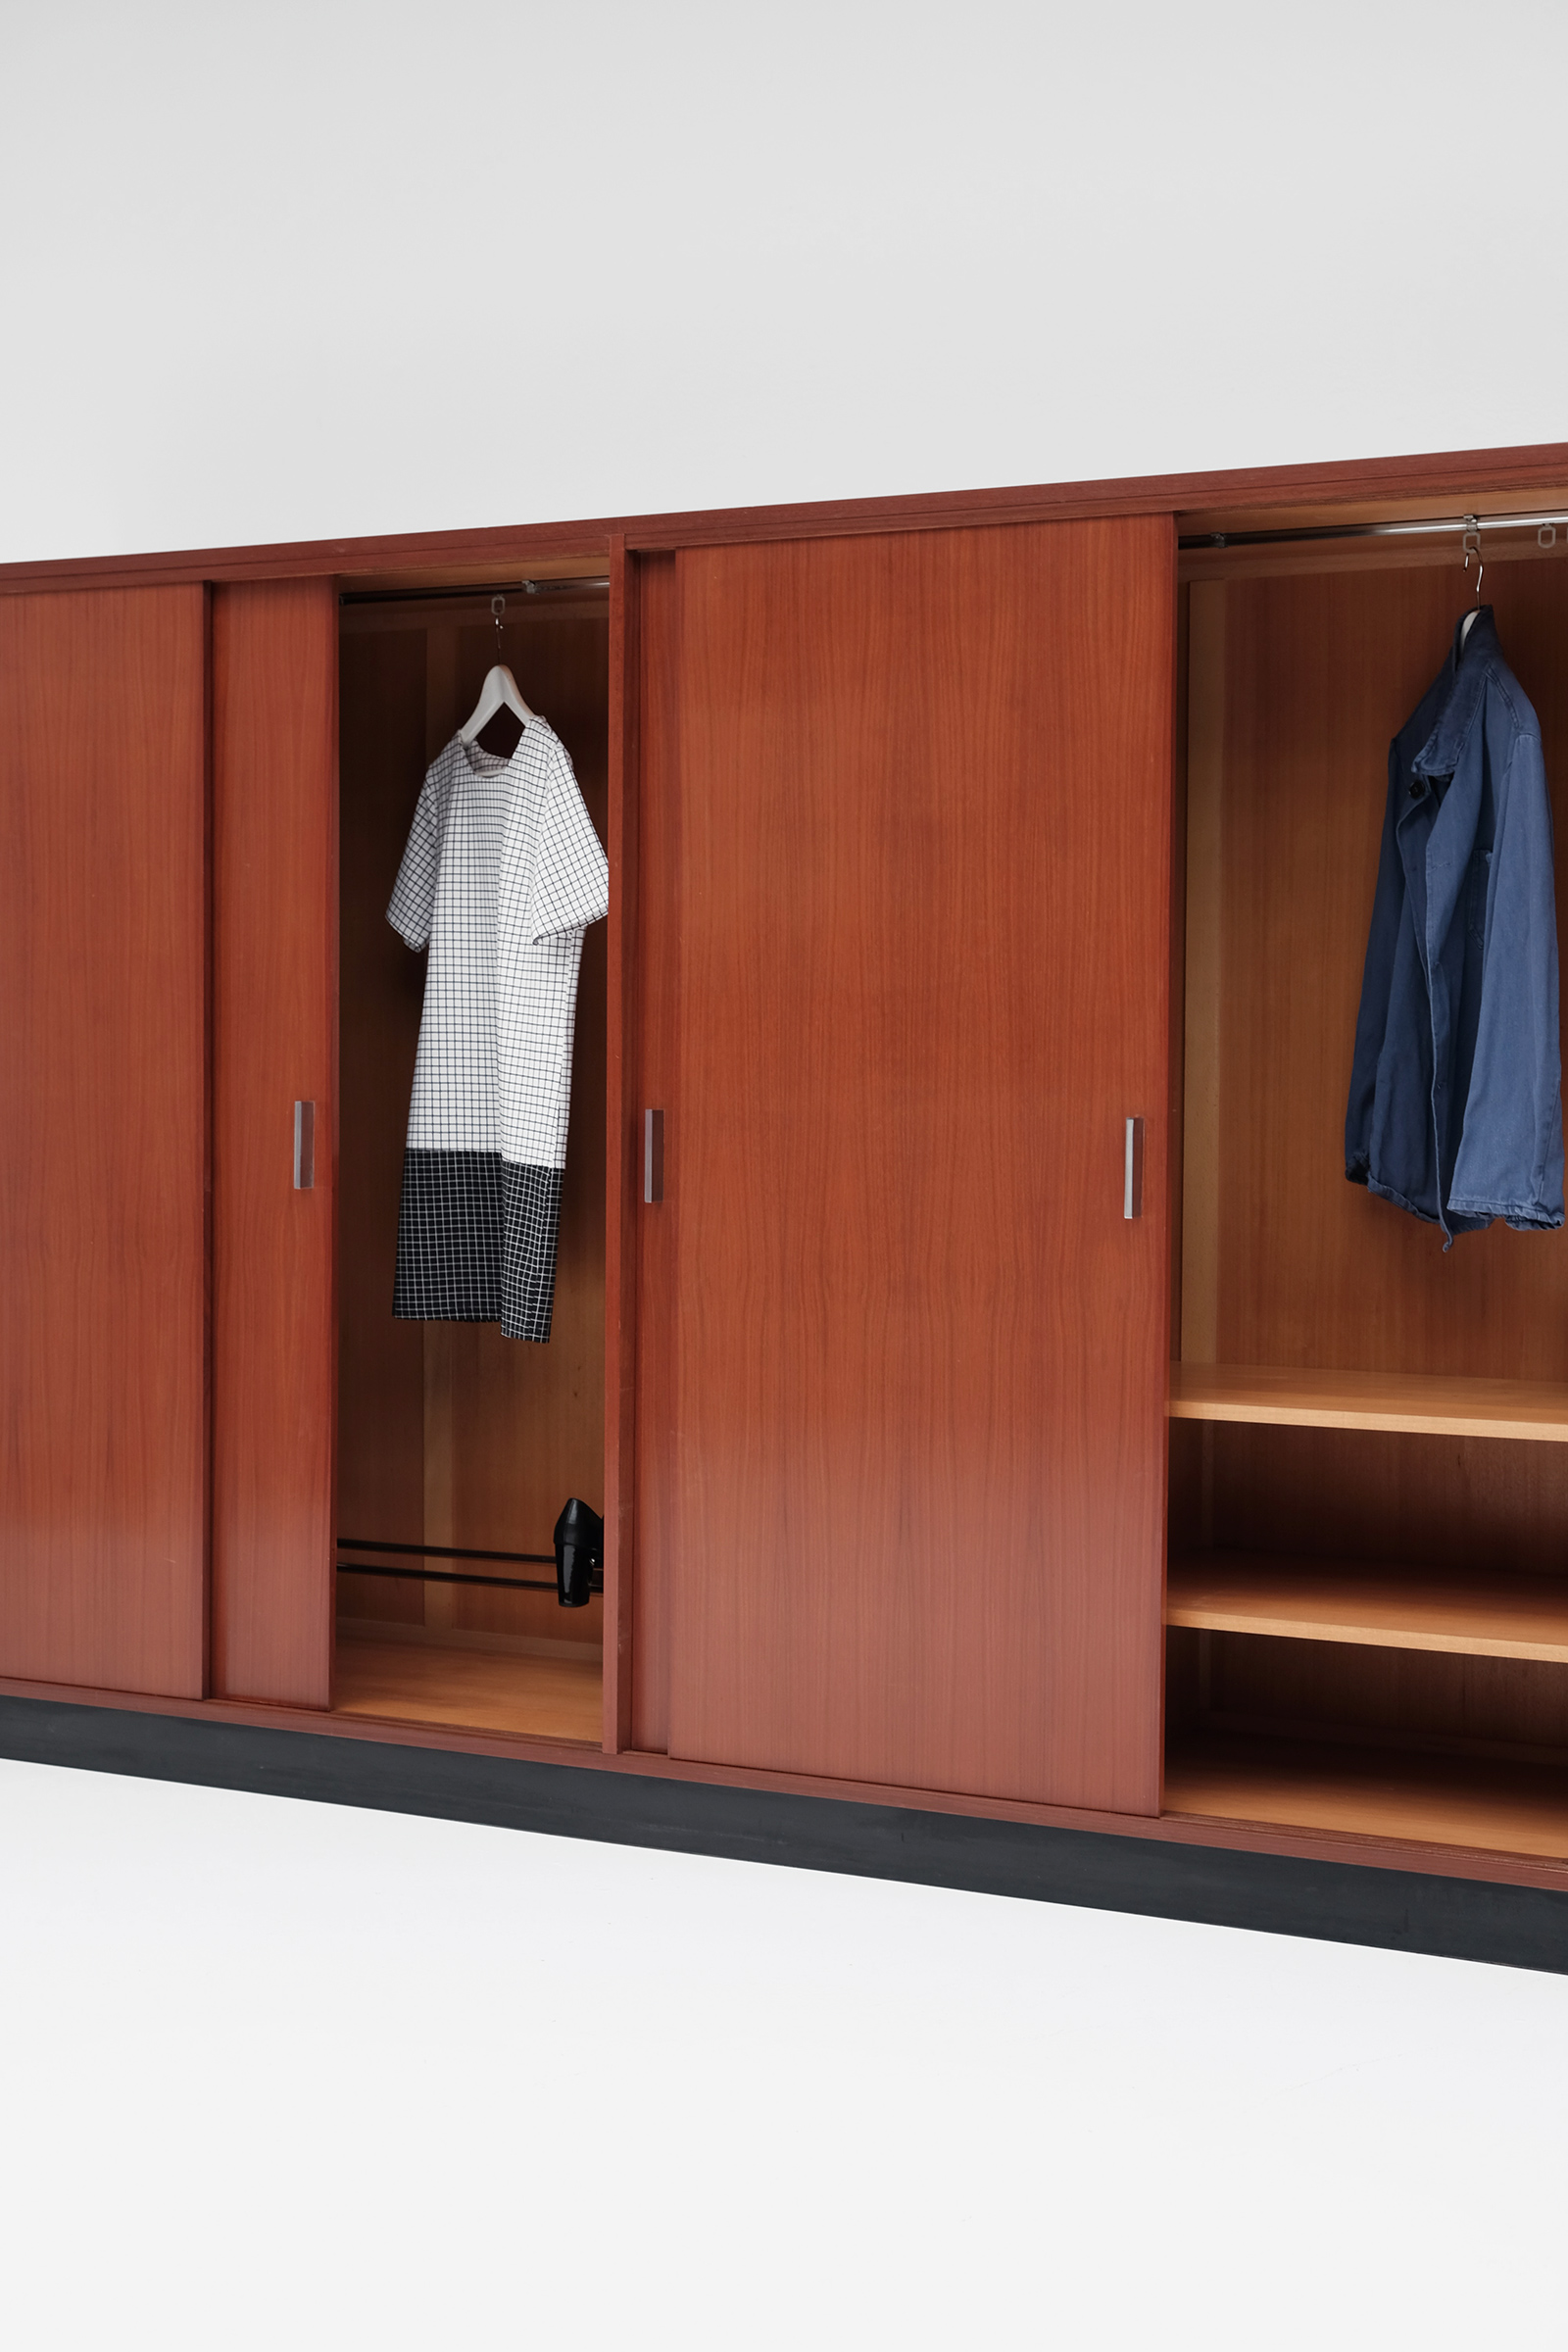 Alfred Hendrickx Wardrobe with Sliding Doorsimage 9